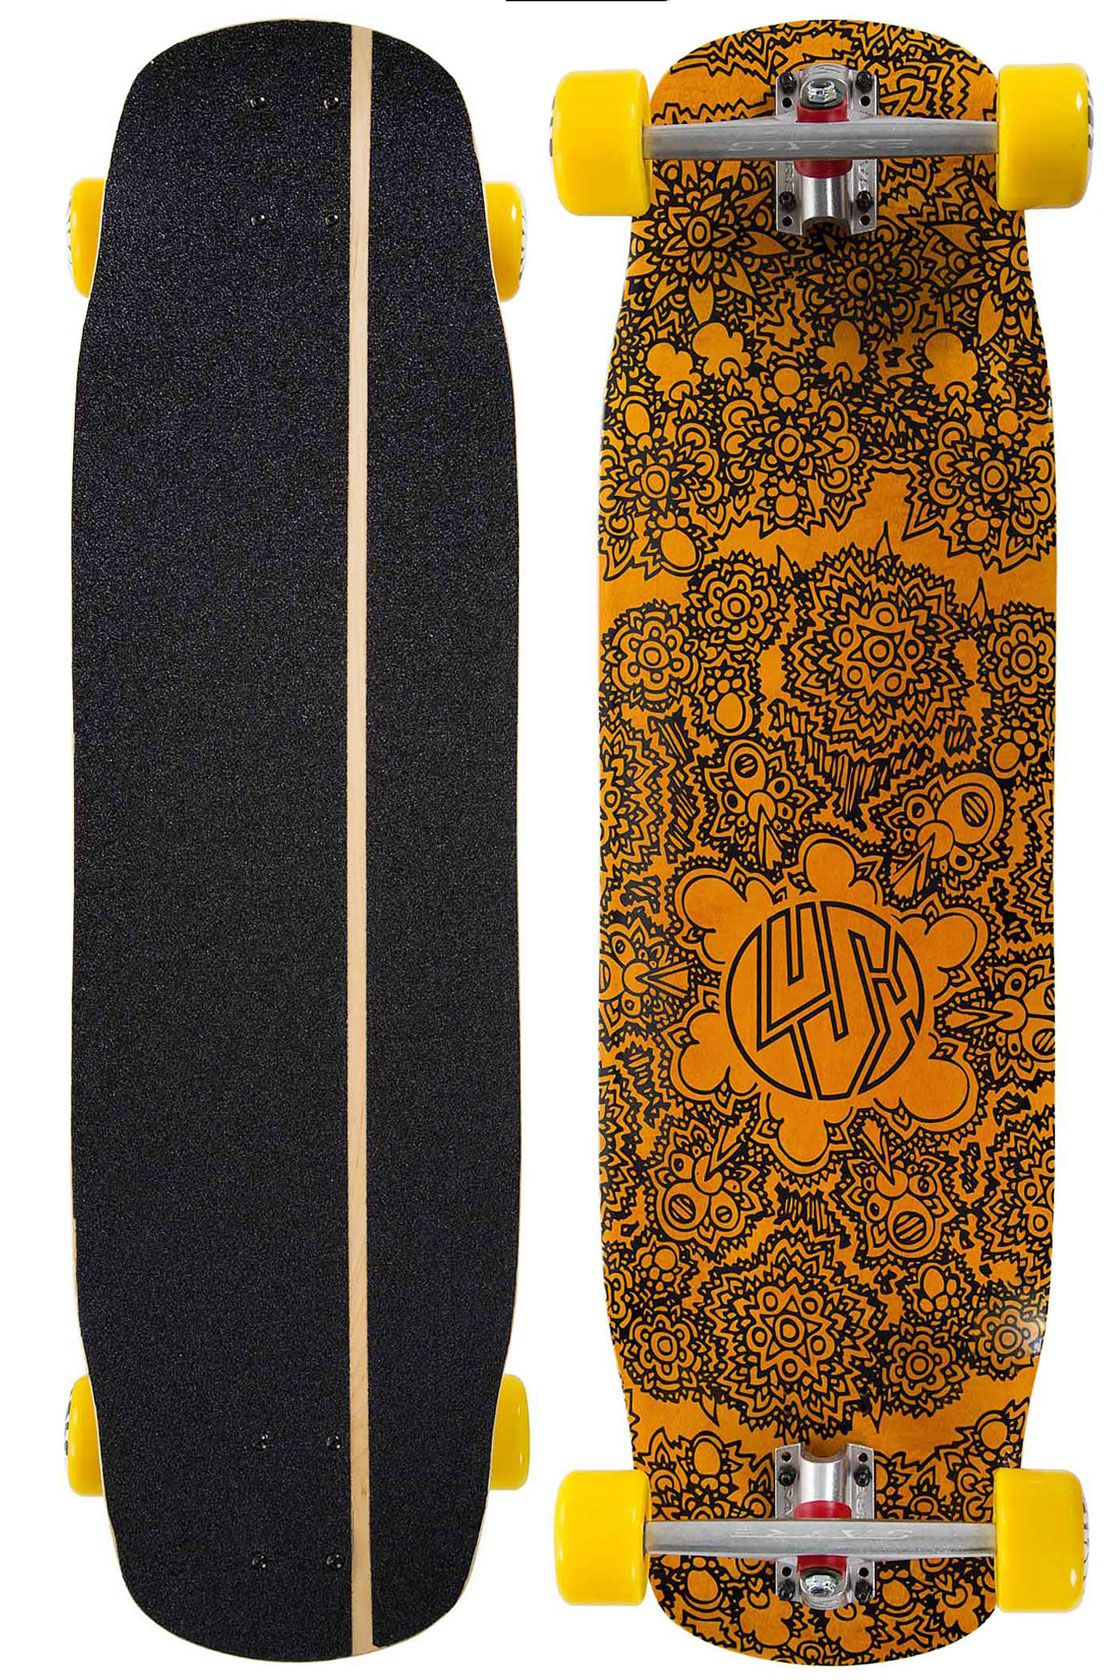 22+ Craft and ride grip tape information